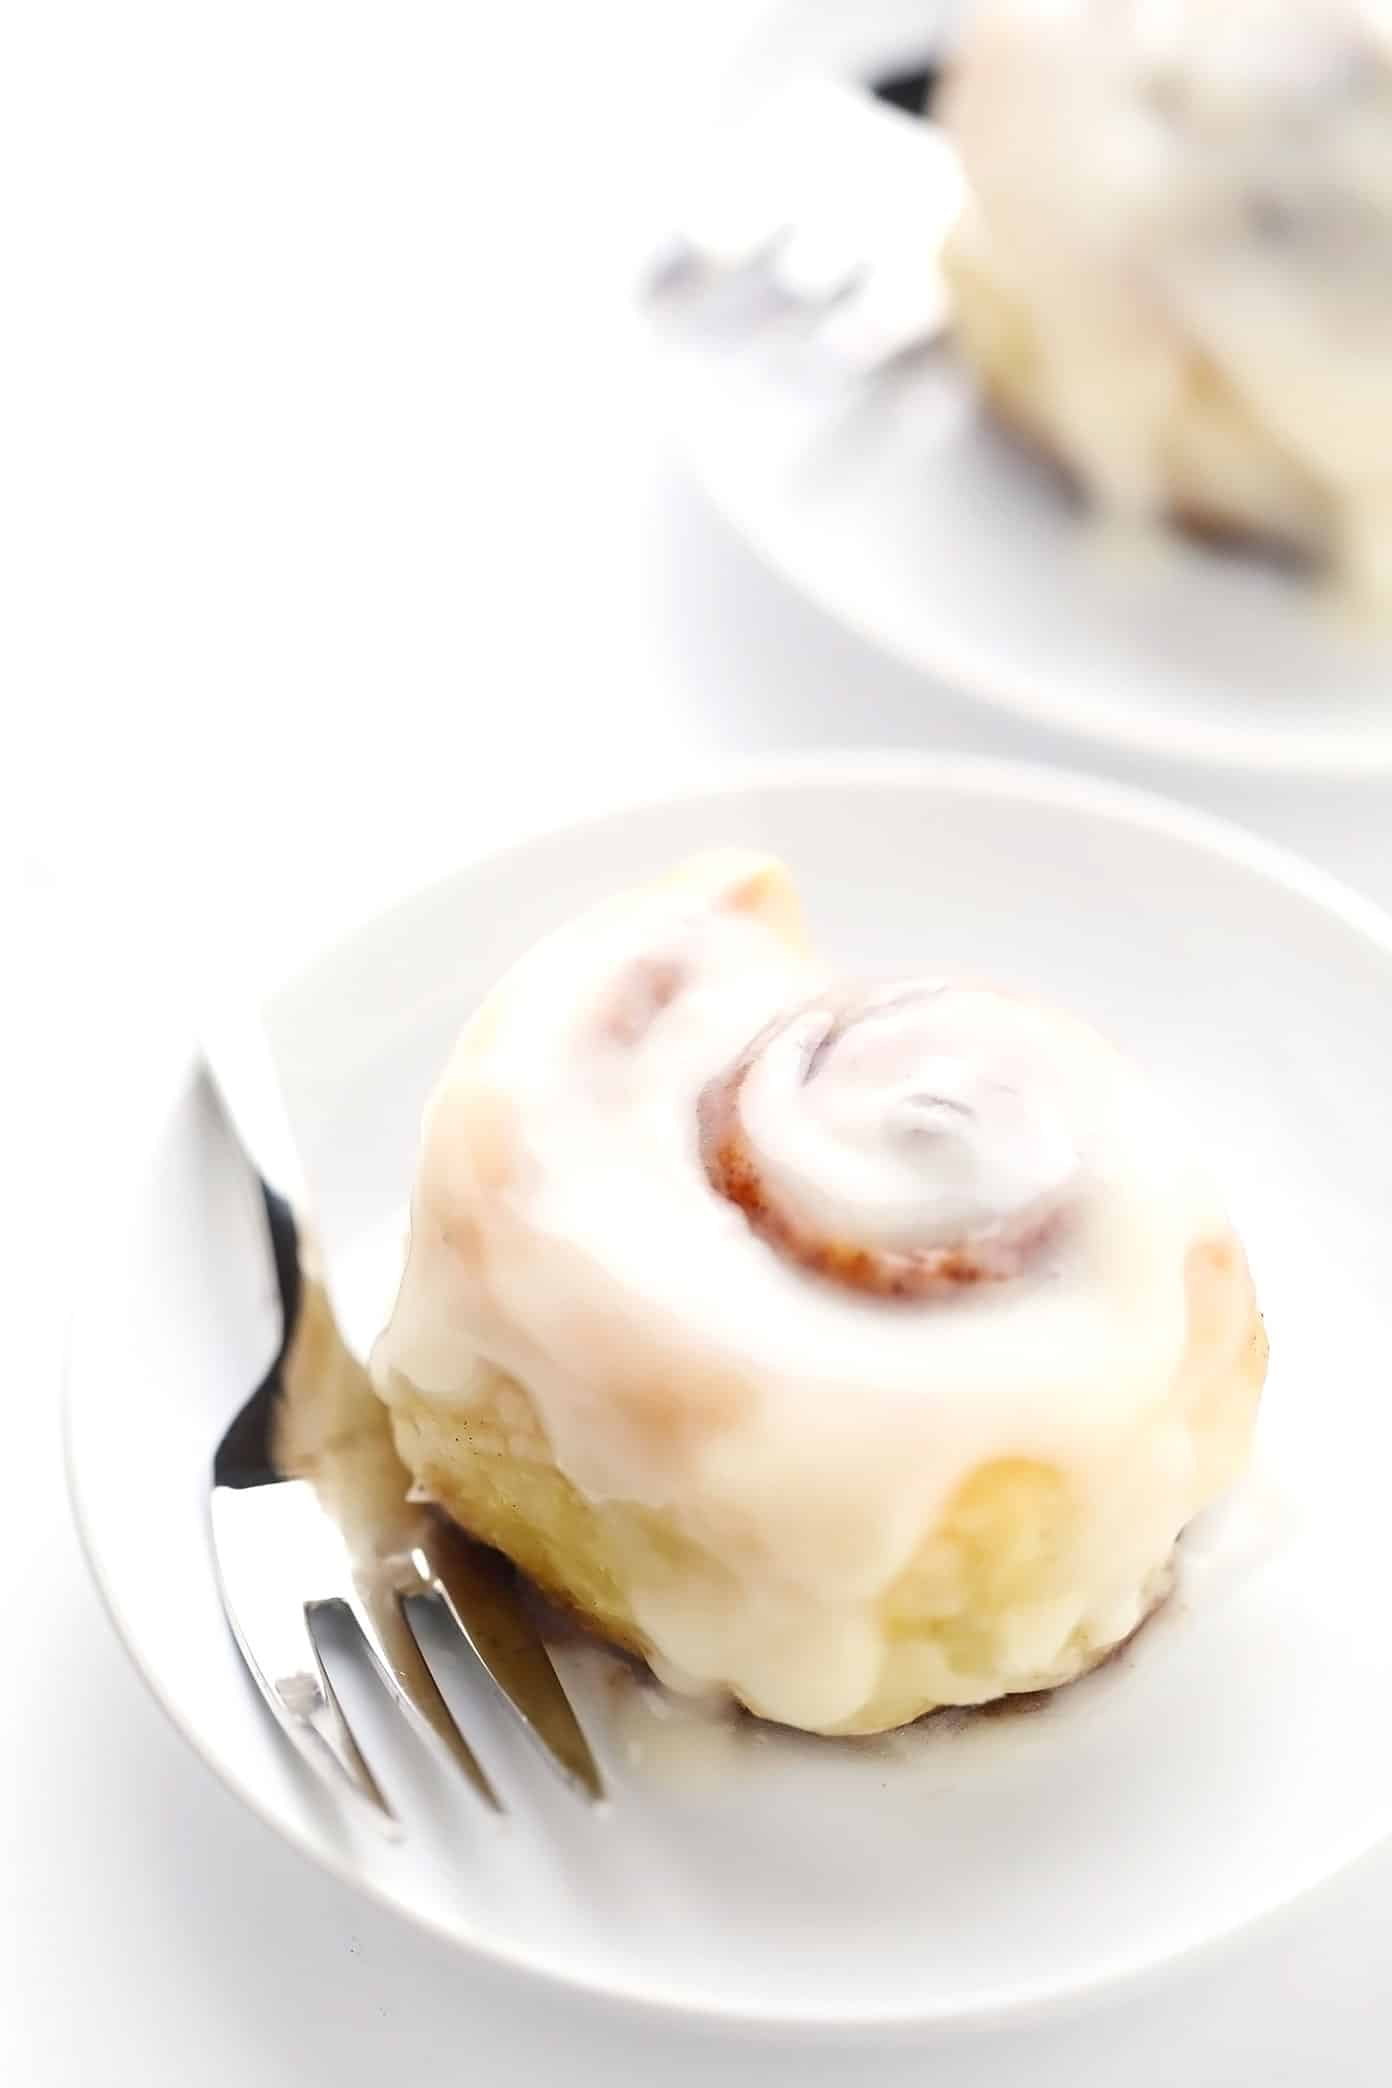 Puff pastry cinnamon rolls on serving plates